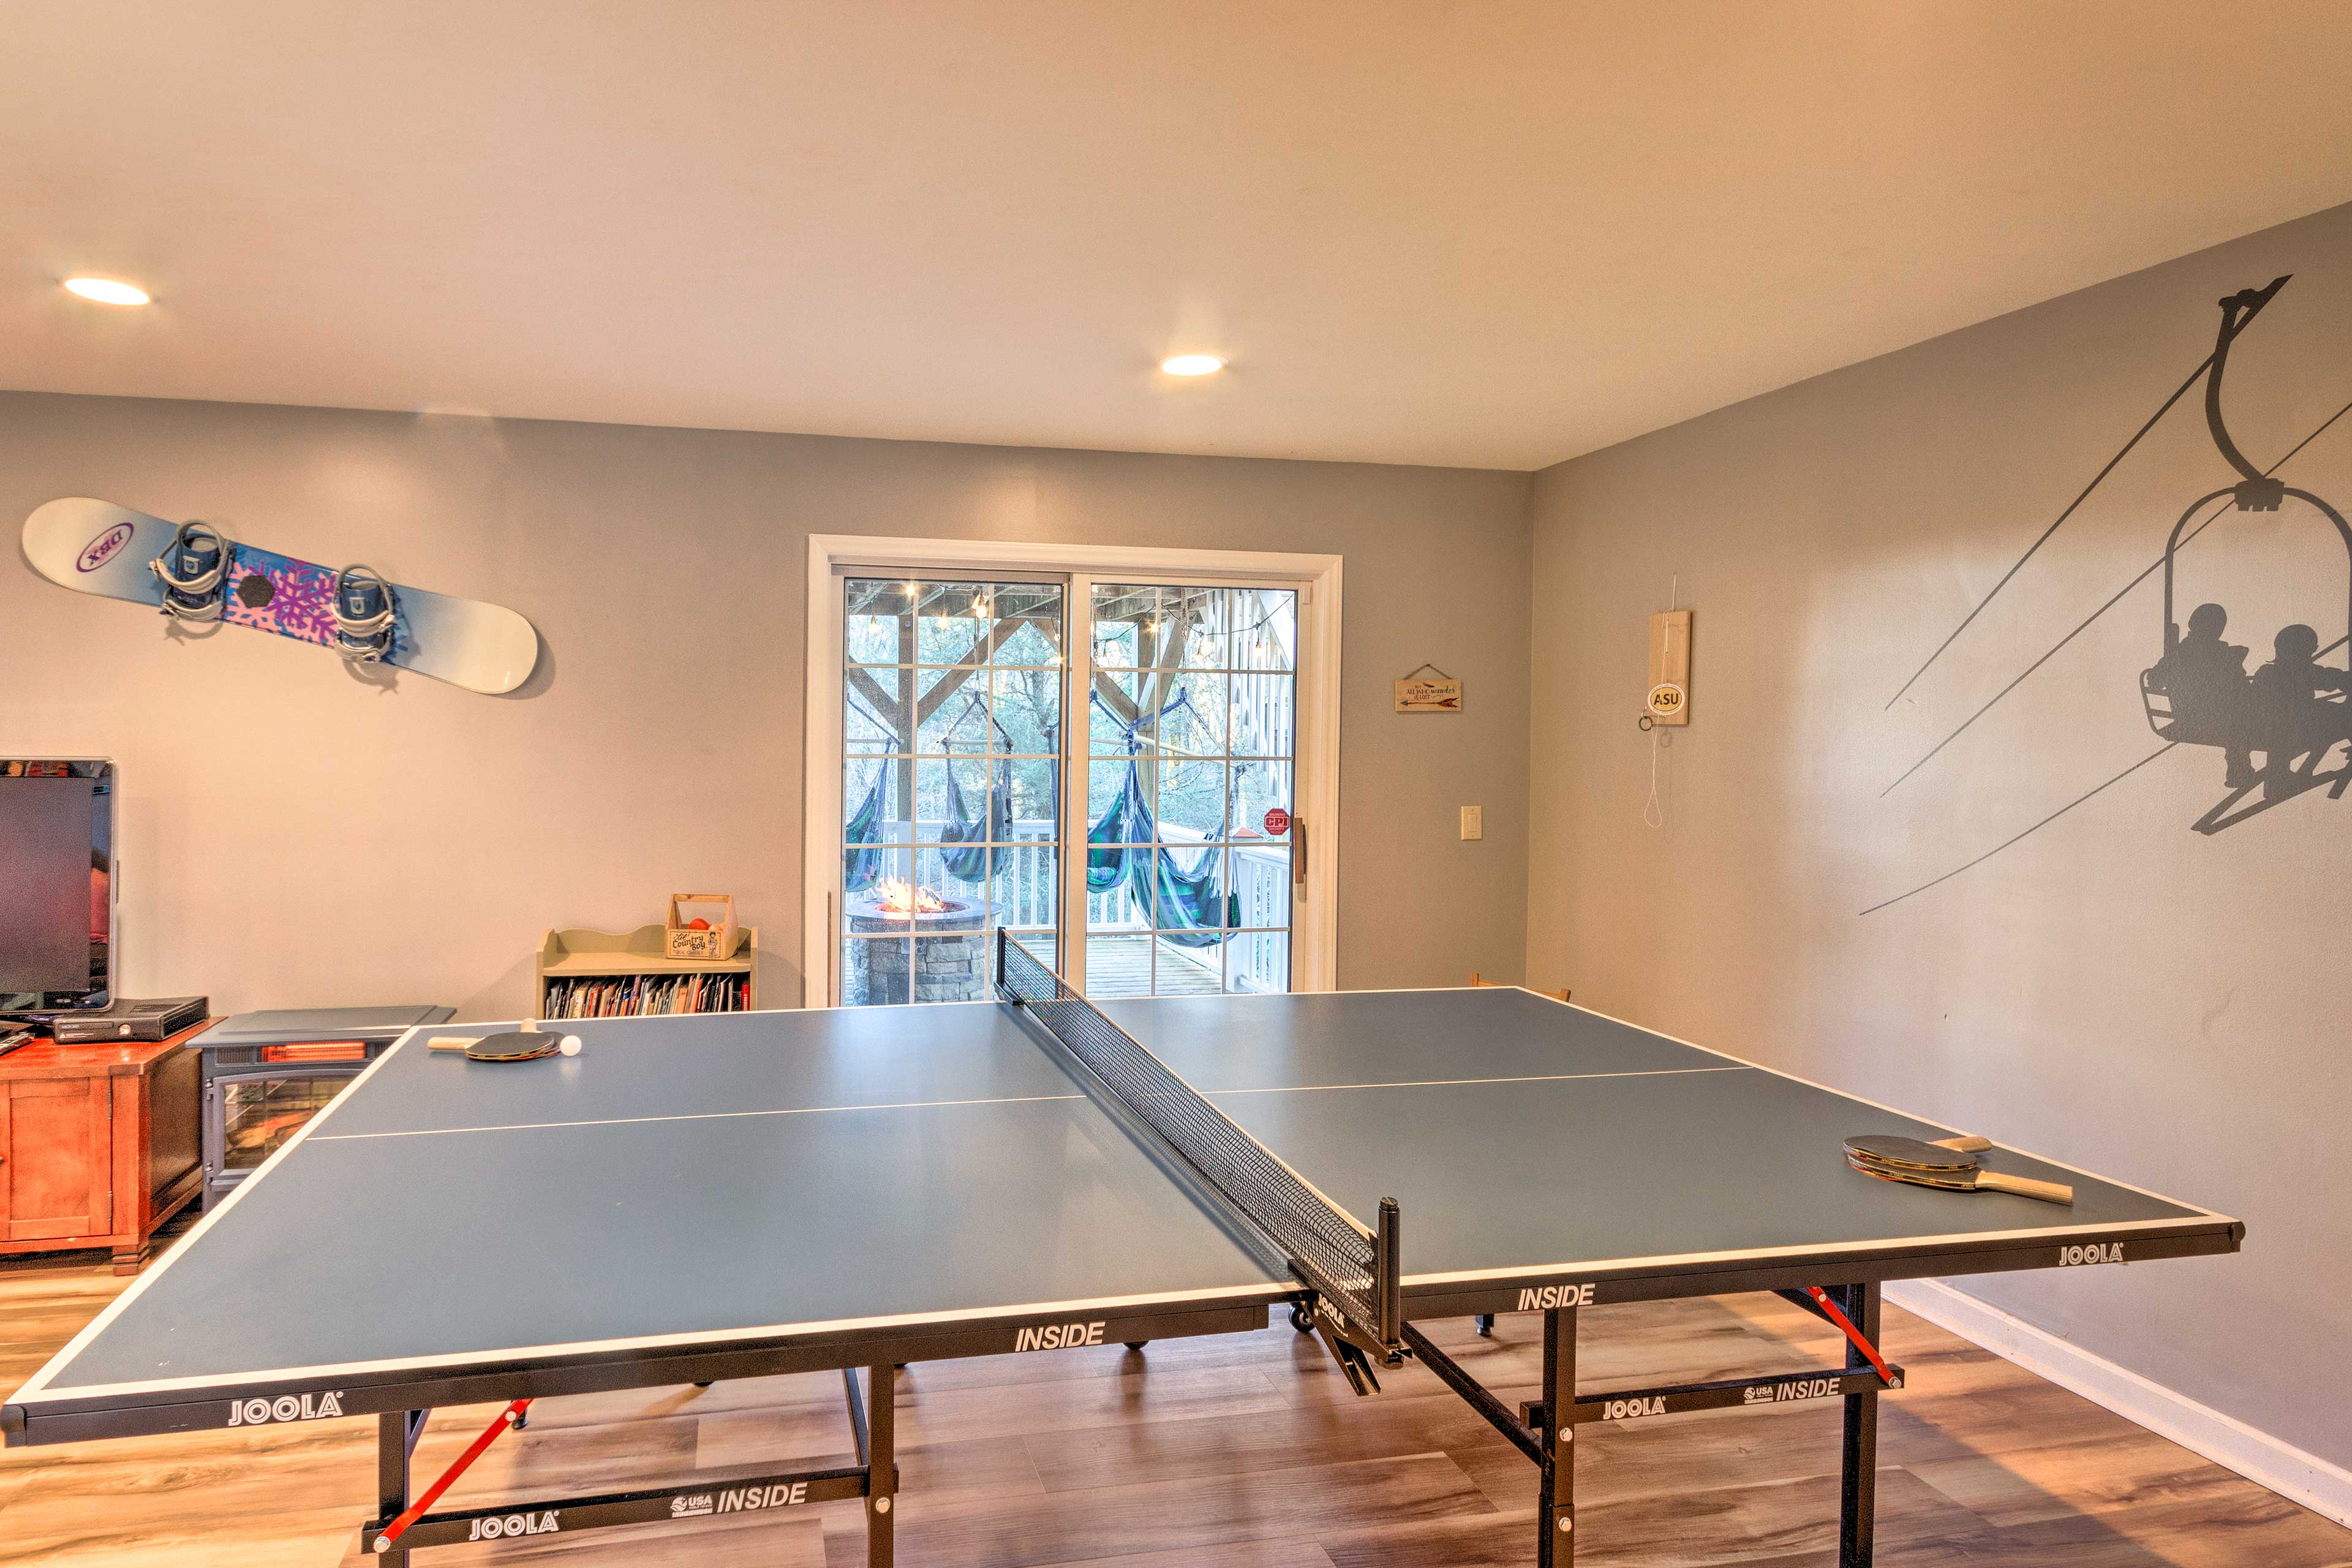 Game Room   Ping-Pong Table